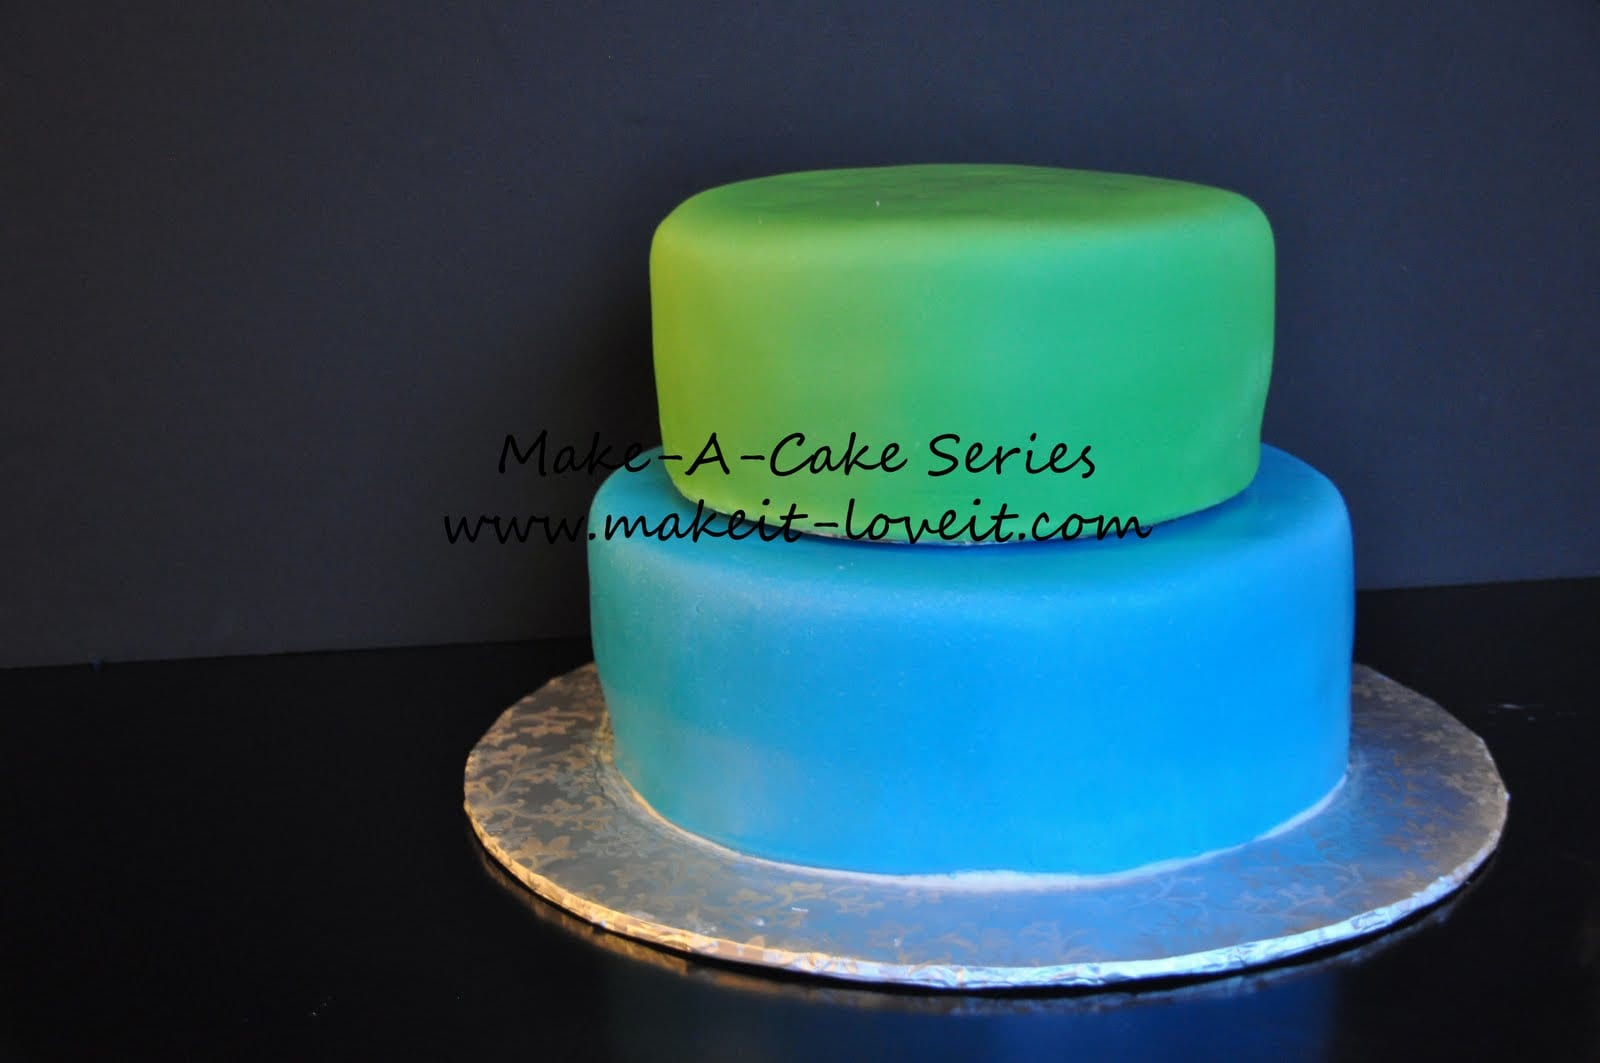 Layers Cake Design Studio : Make-A-Cake Series: Filling and Stacking a Cake Make It ...